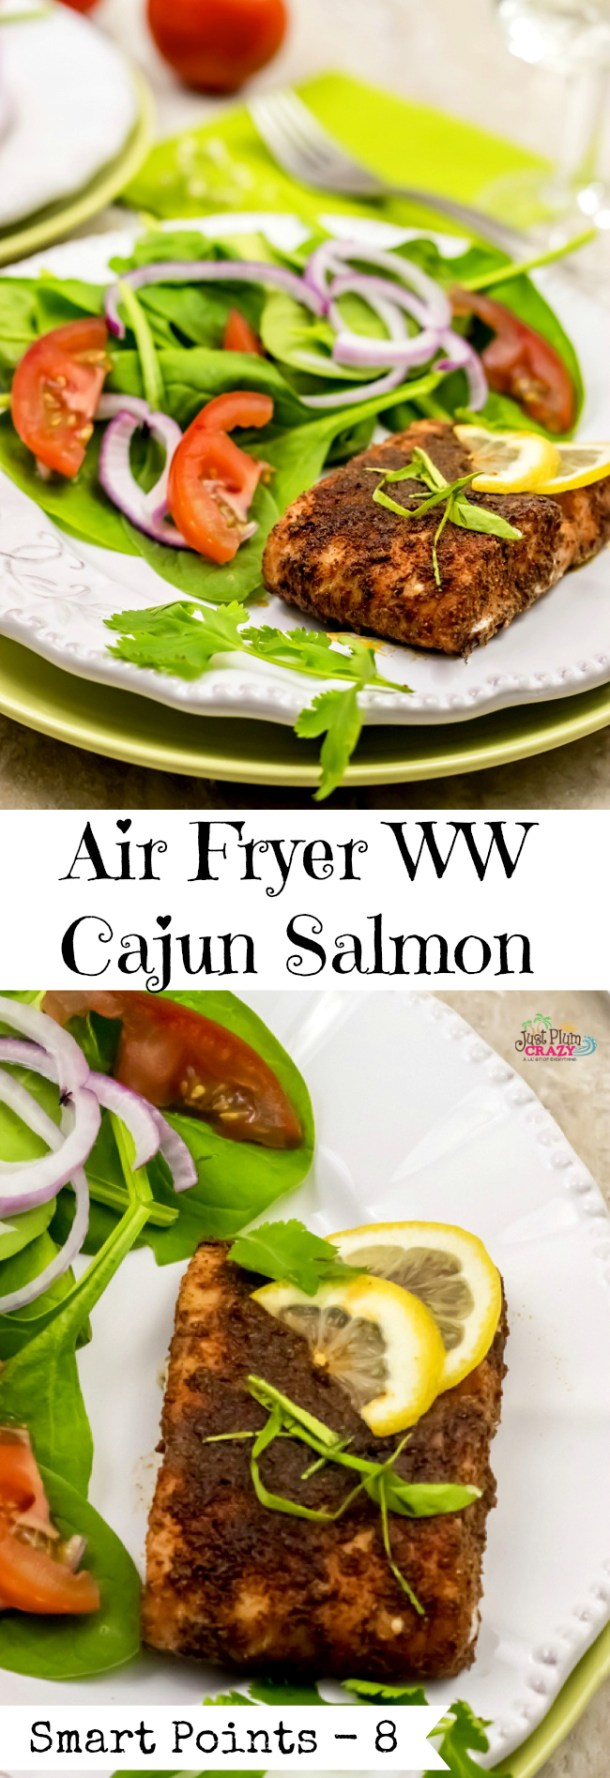 We are going to shake things up a little with a seafood recipe this time, an Air Fryer WW Cajun Salmon recipe with only 8 Smart Points.